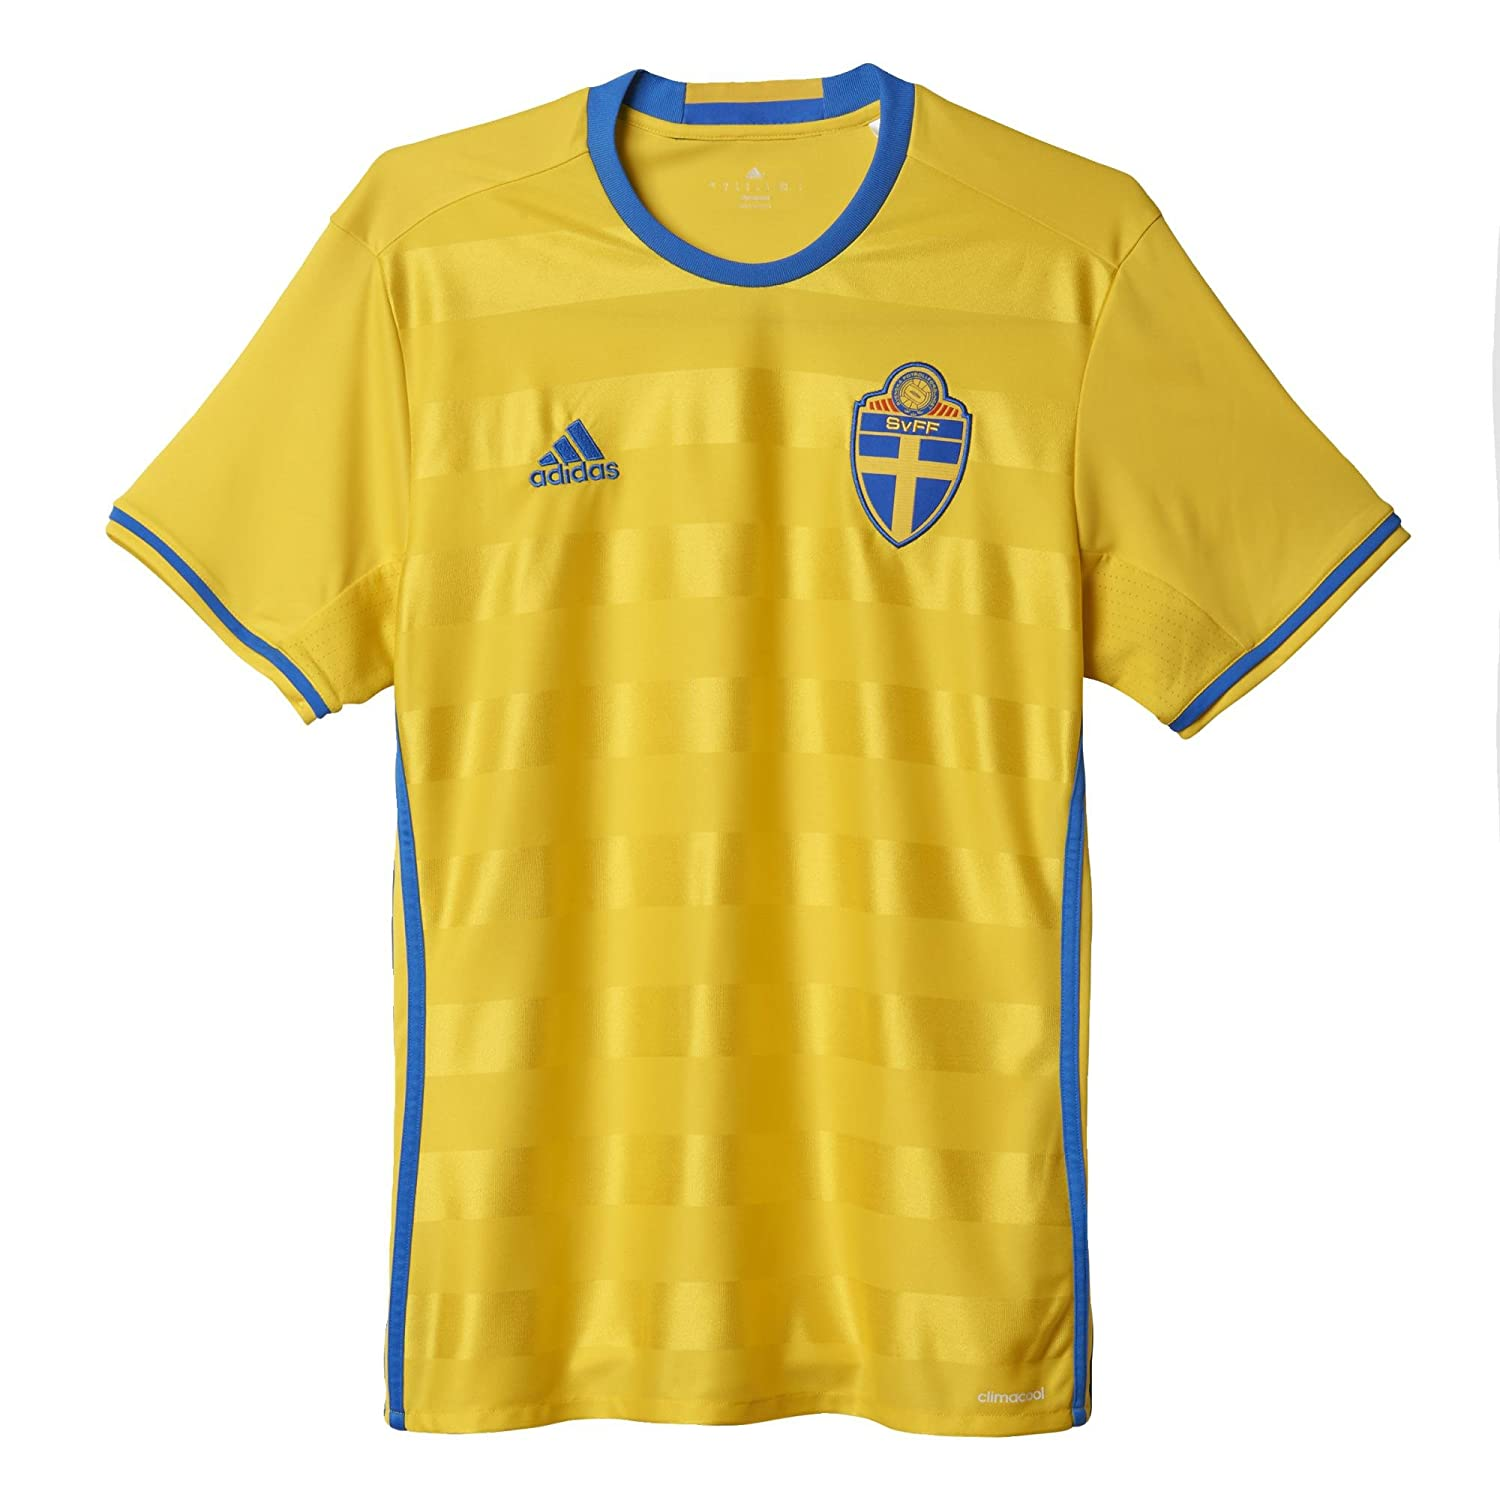 ab824f344 Amazon.com  adidas Sweden Home Jersey 2016 2017  Sports   Outdoors